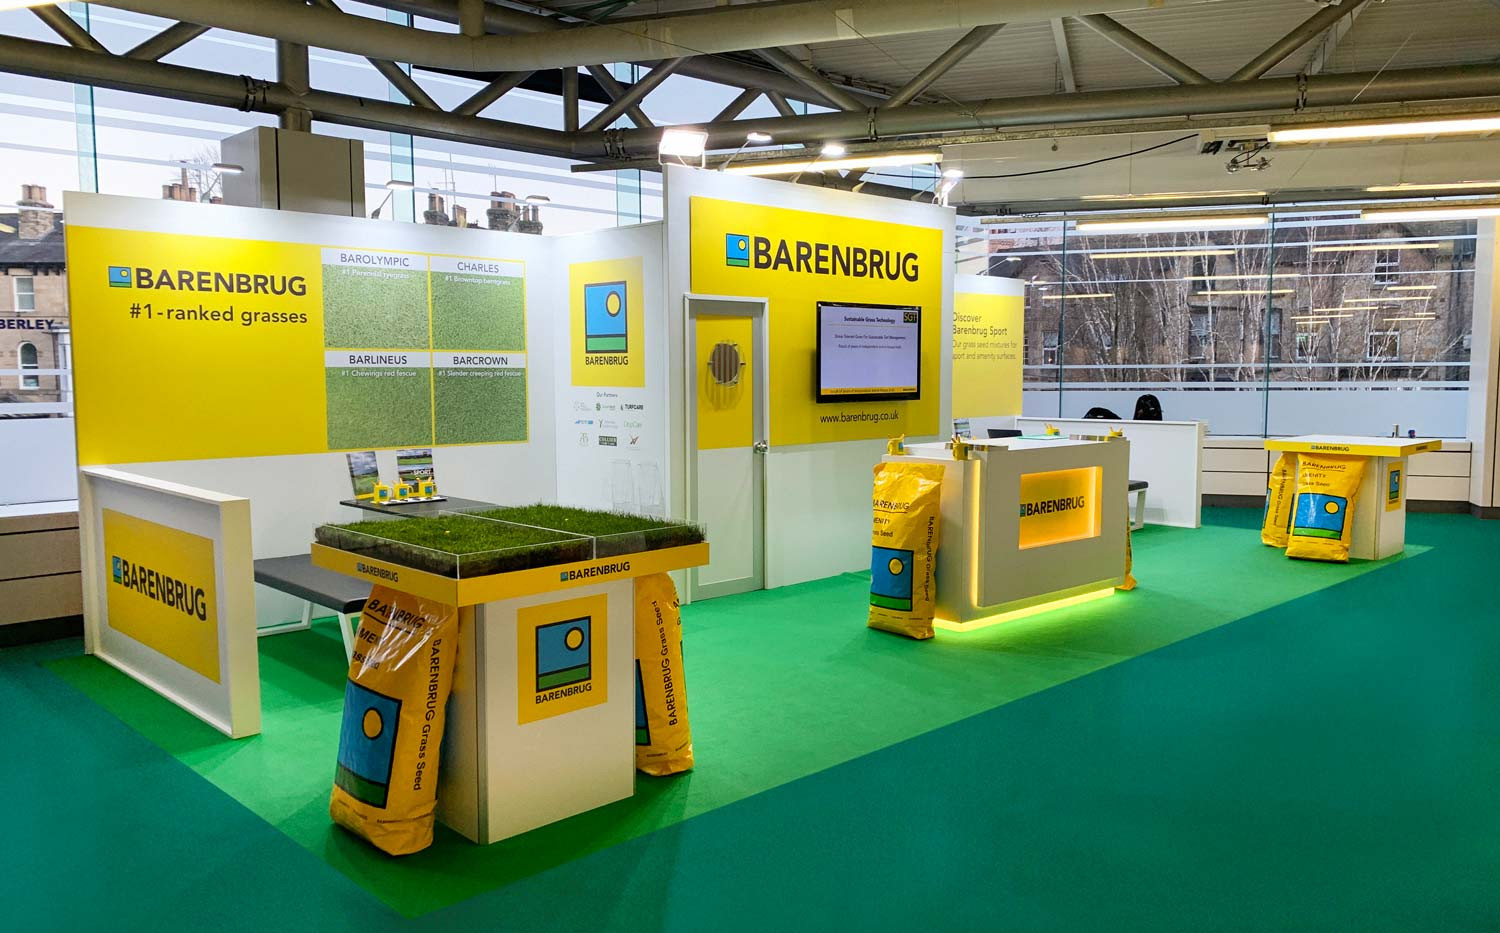 Barenbrug-BTME-Harrogate-2020-Exhibition